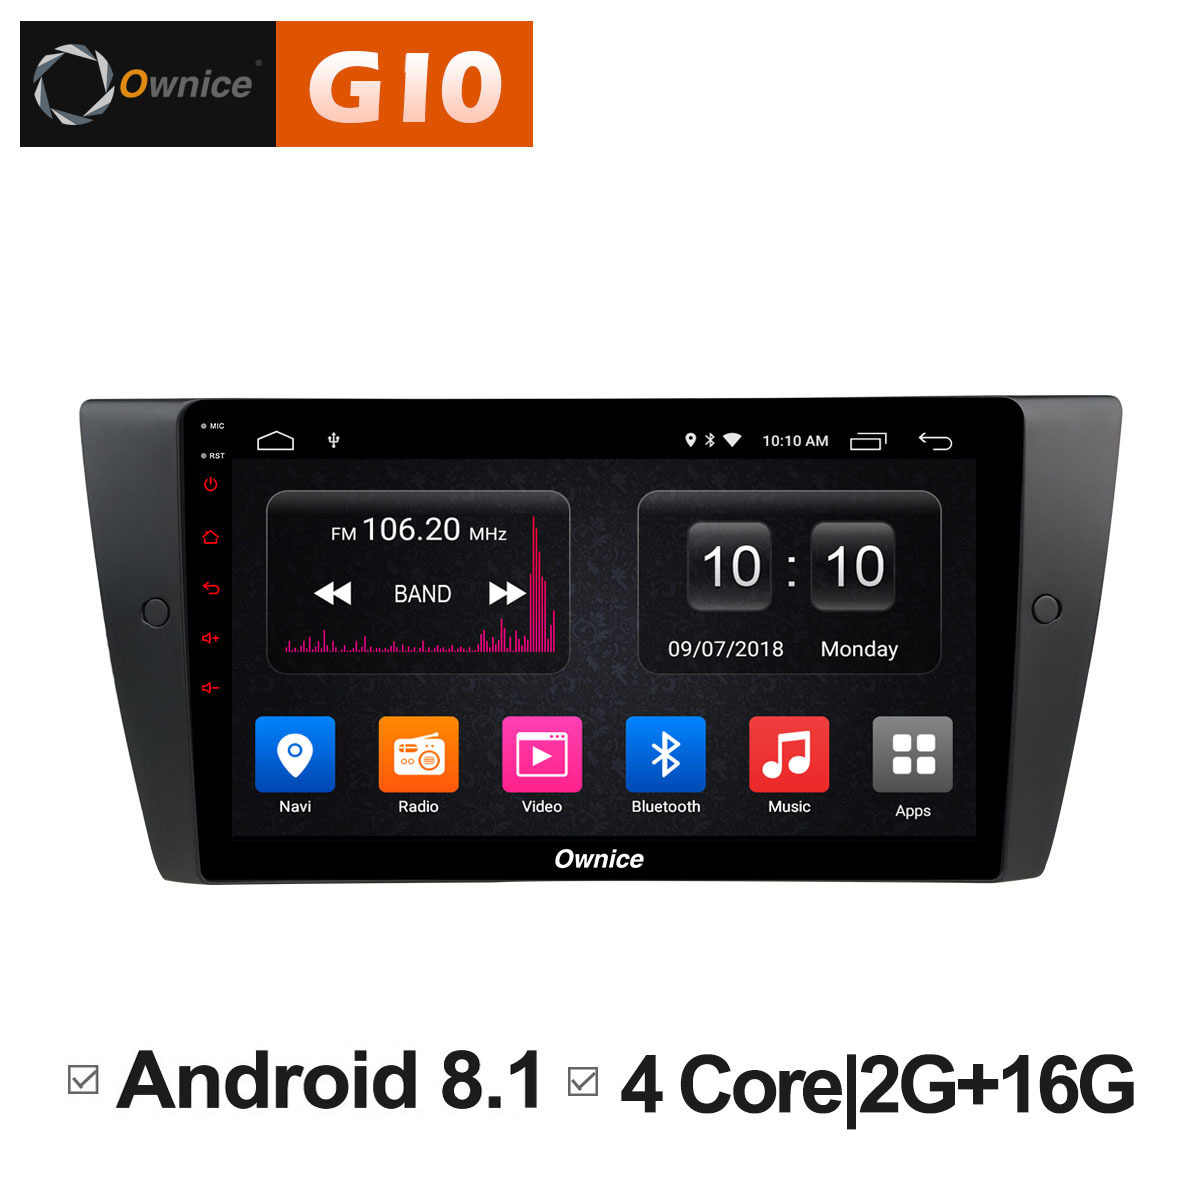 9 Inch Ownice C500 + G10 Auto Multimedia GPS Speler Android 8.1 Octa Core Voor BMW E90 dvd automotivo Radio 2G 4G LTE DVR DAB + TPMS